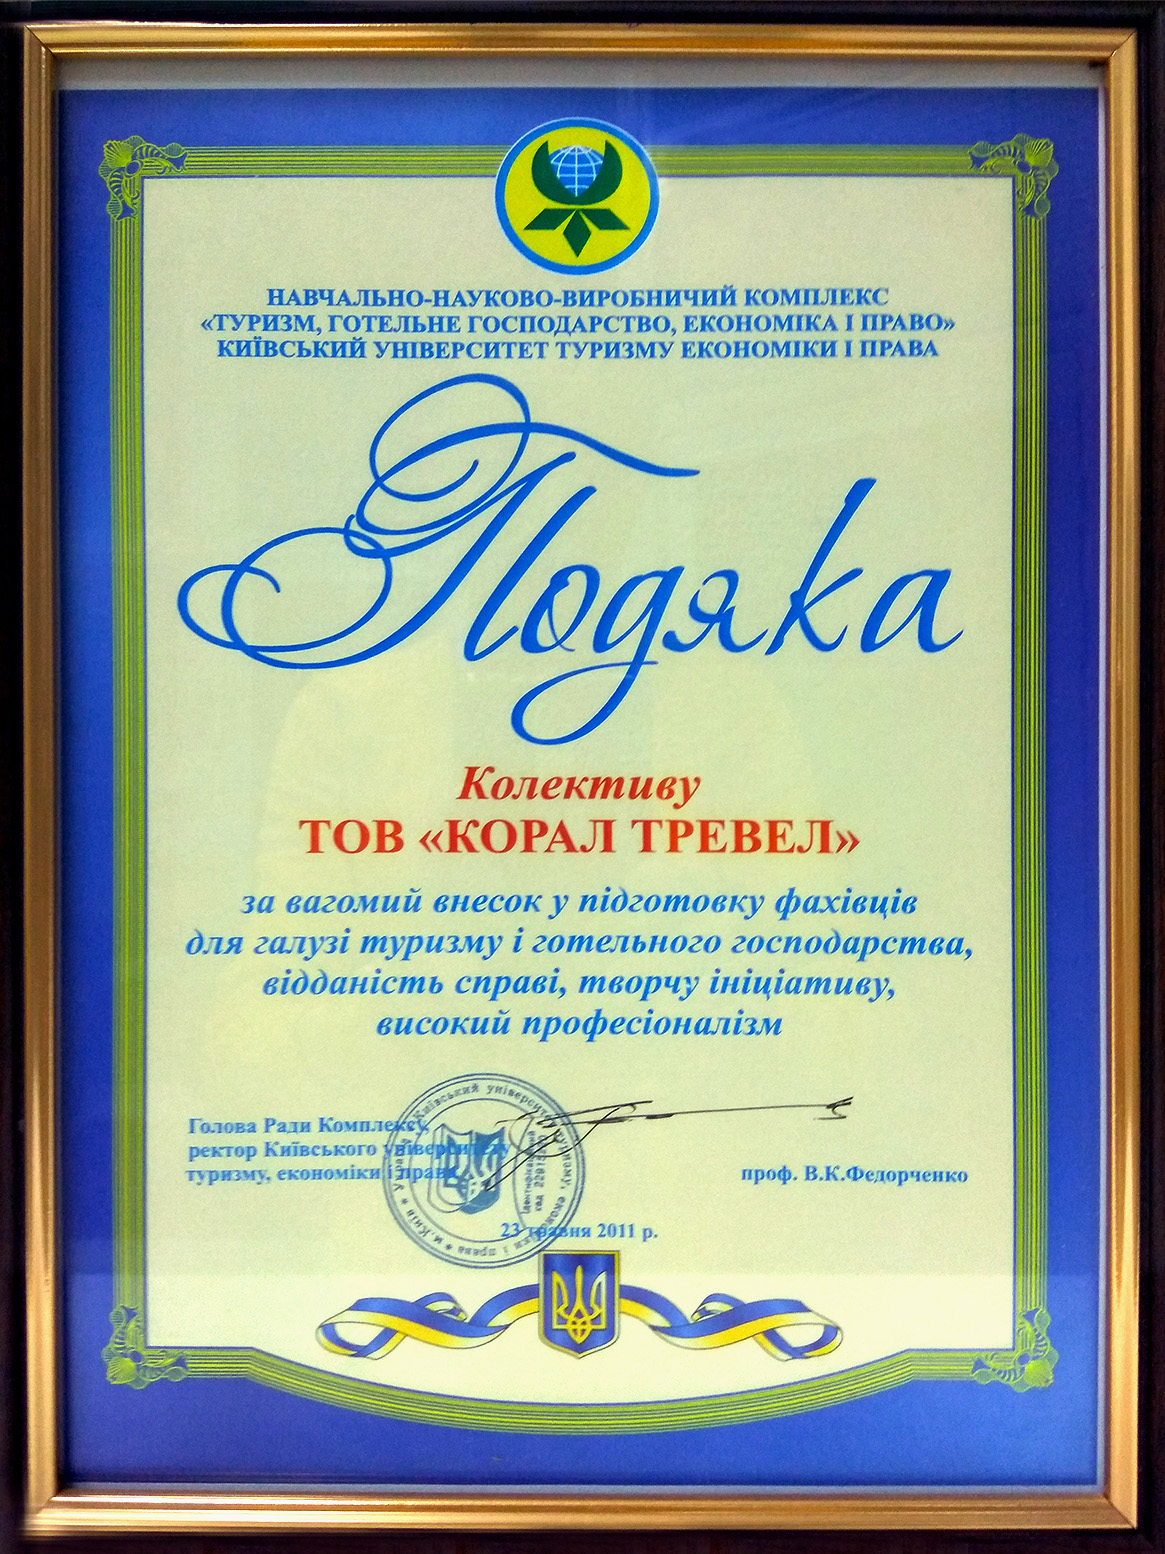 5 DIPLOMA For significant contribution in high quality education of specialists for tourism and hotel industry 2011